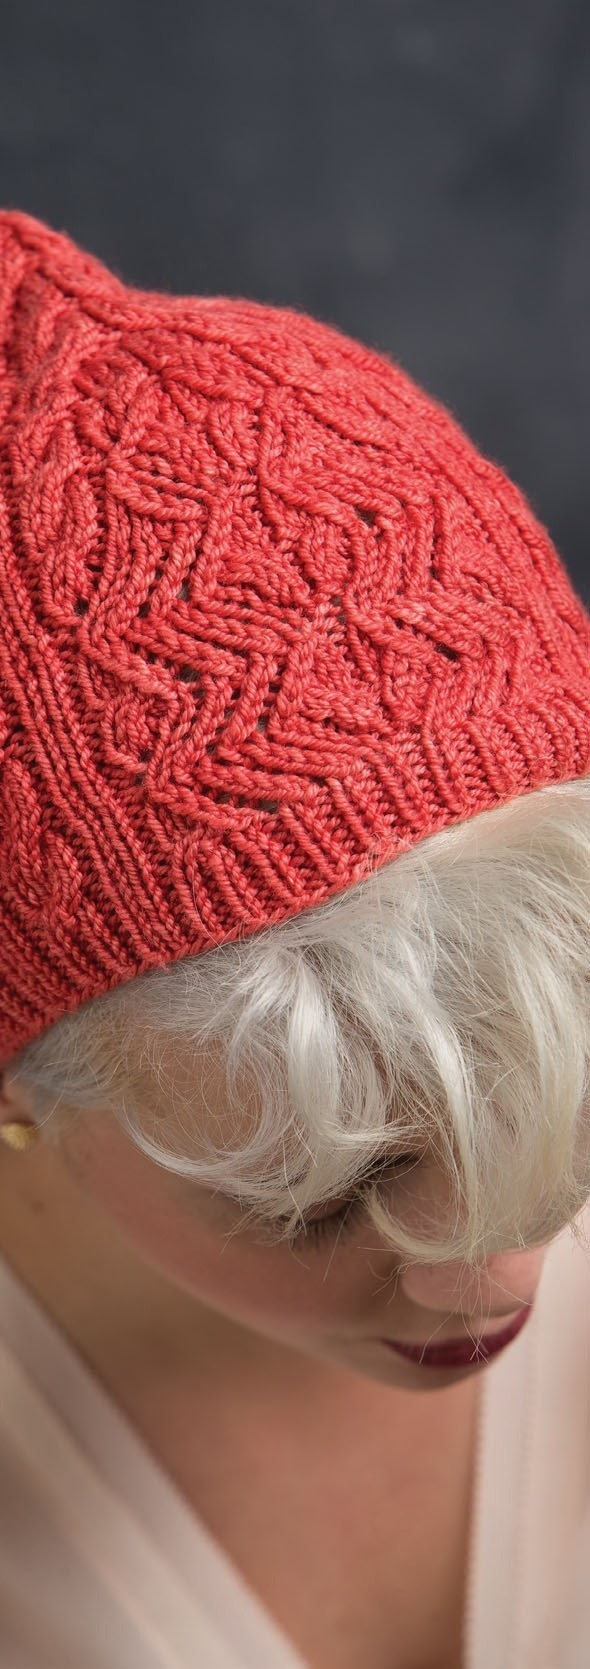 Billie Hat 183 Extract From Refined Knits By Jennifer Wood